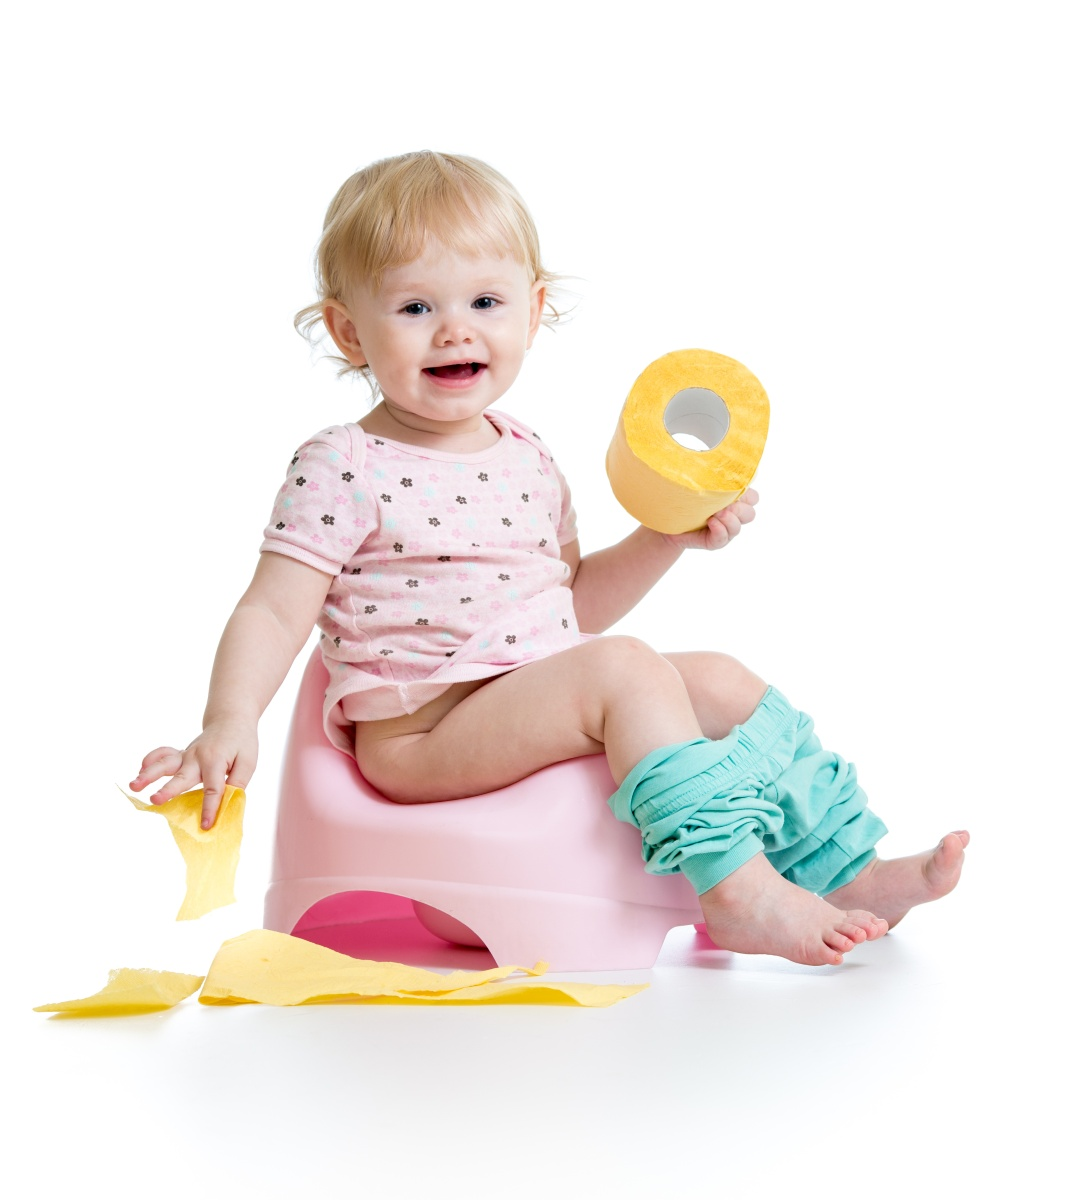 Potty Training: As Easy as 123?